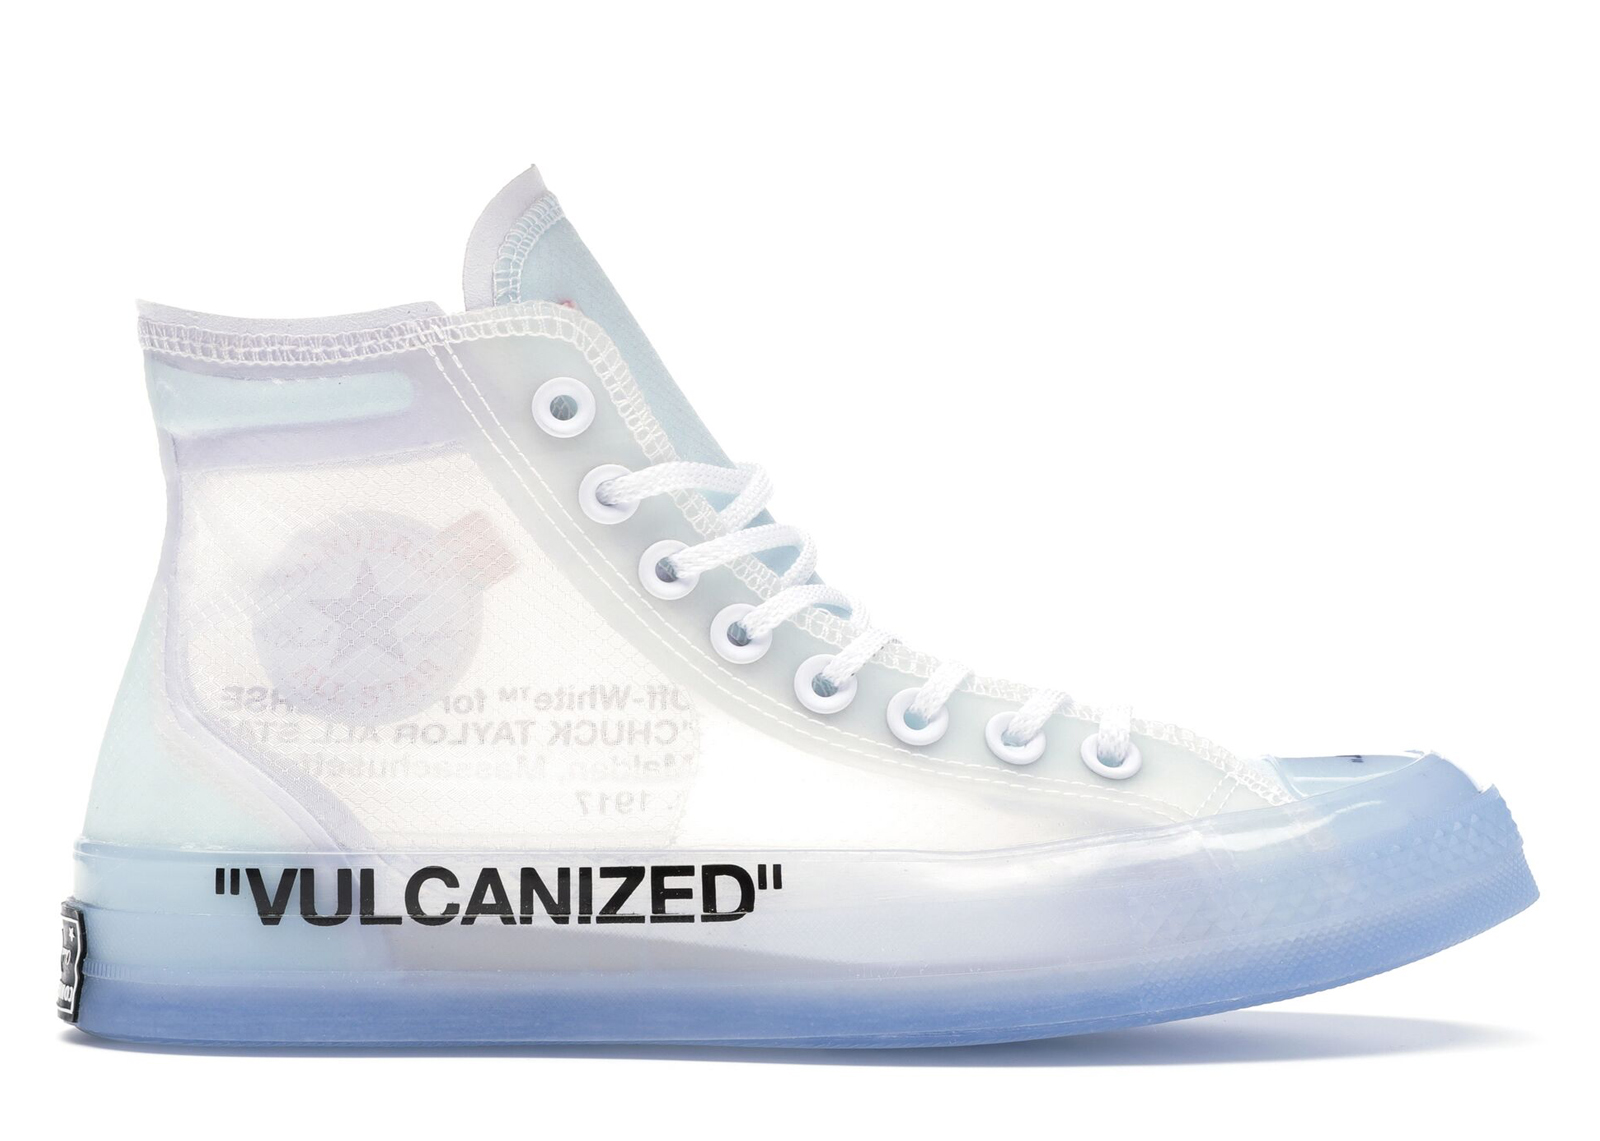 2vulcanized converse off white